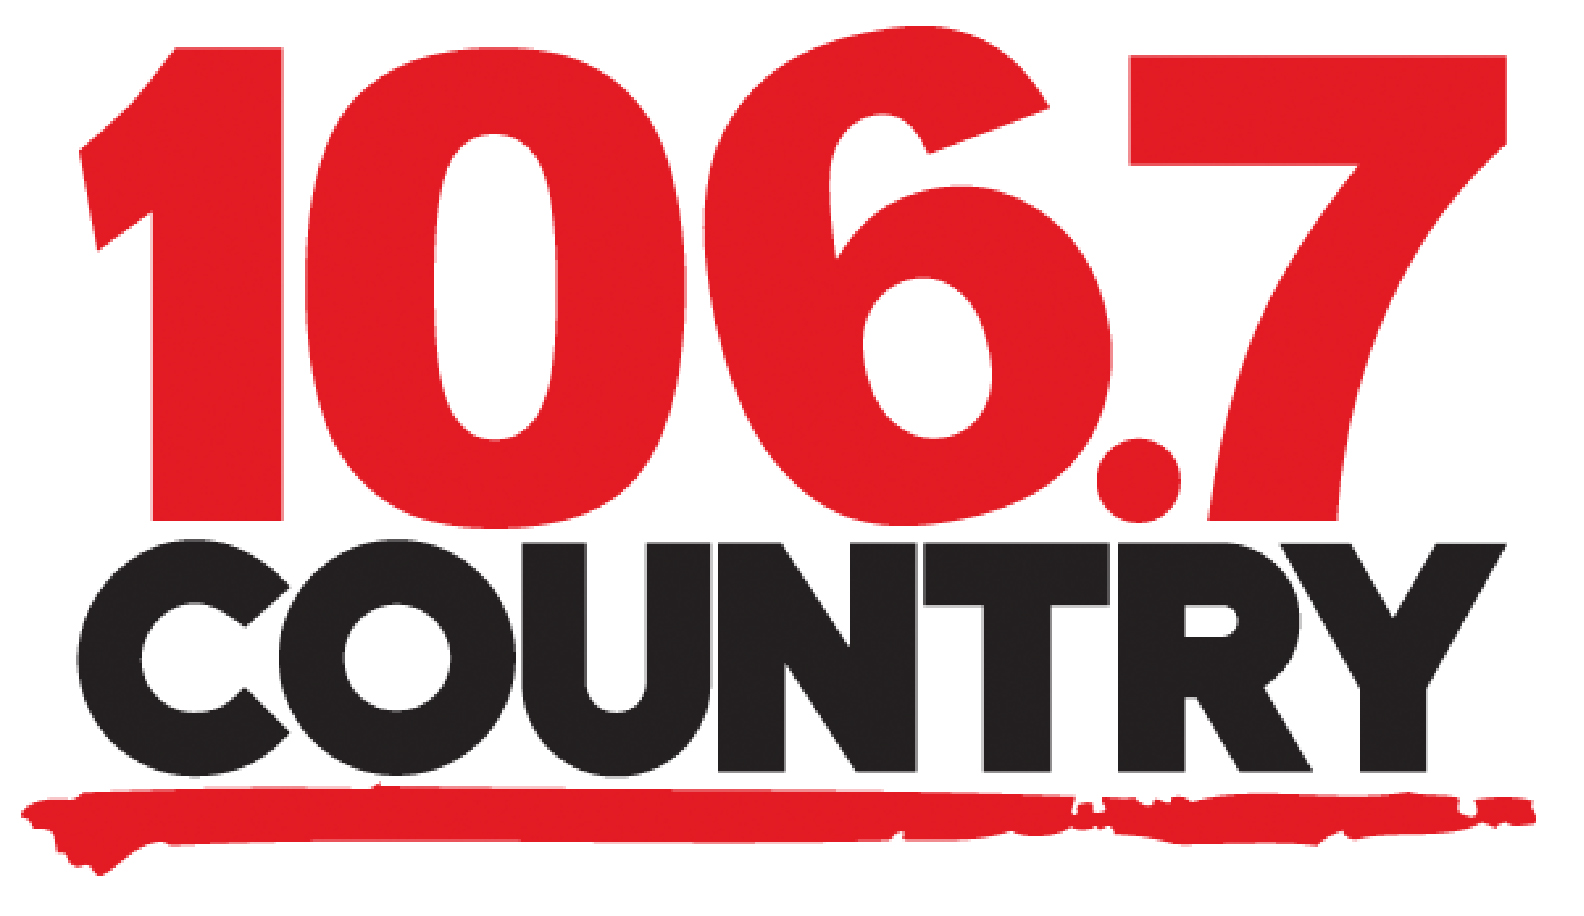 106.7 Country - Booth #200